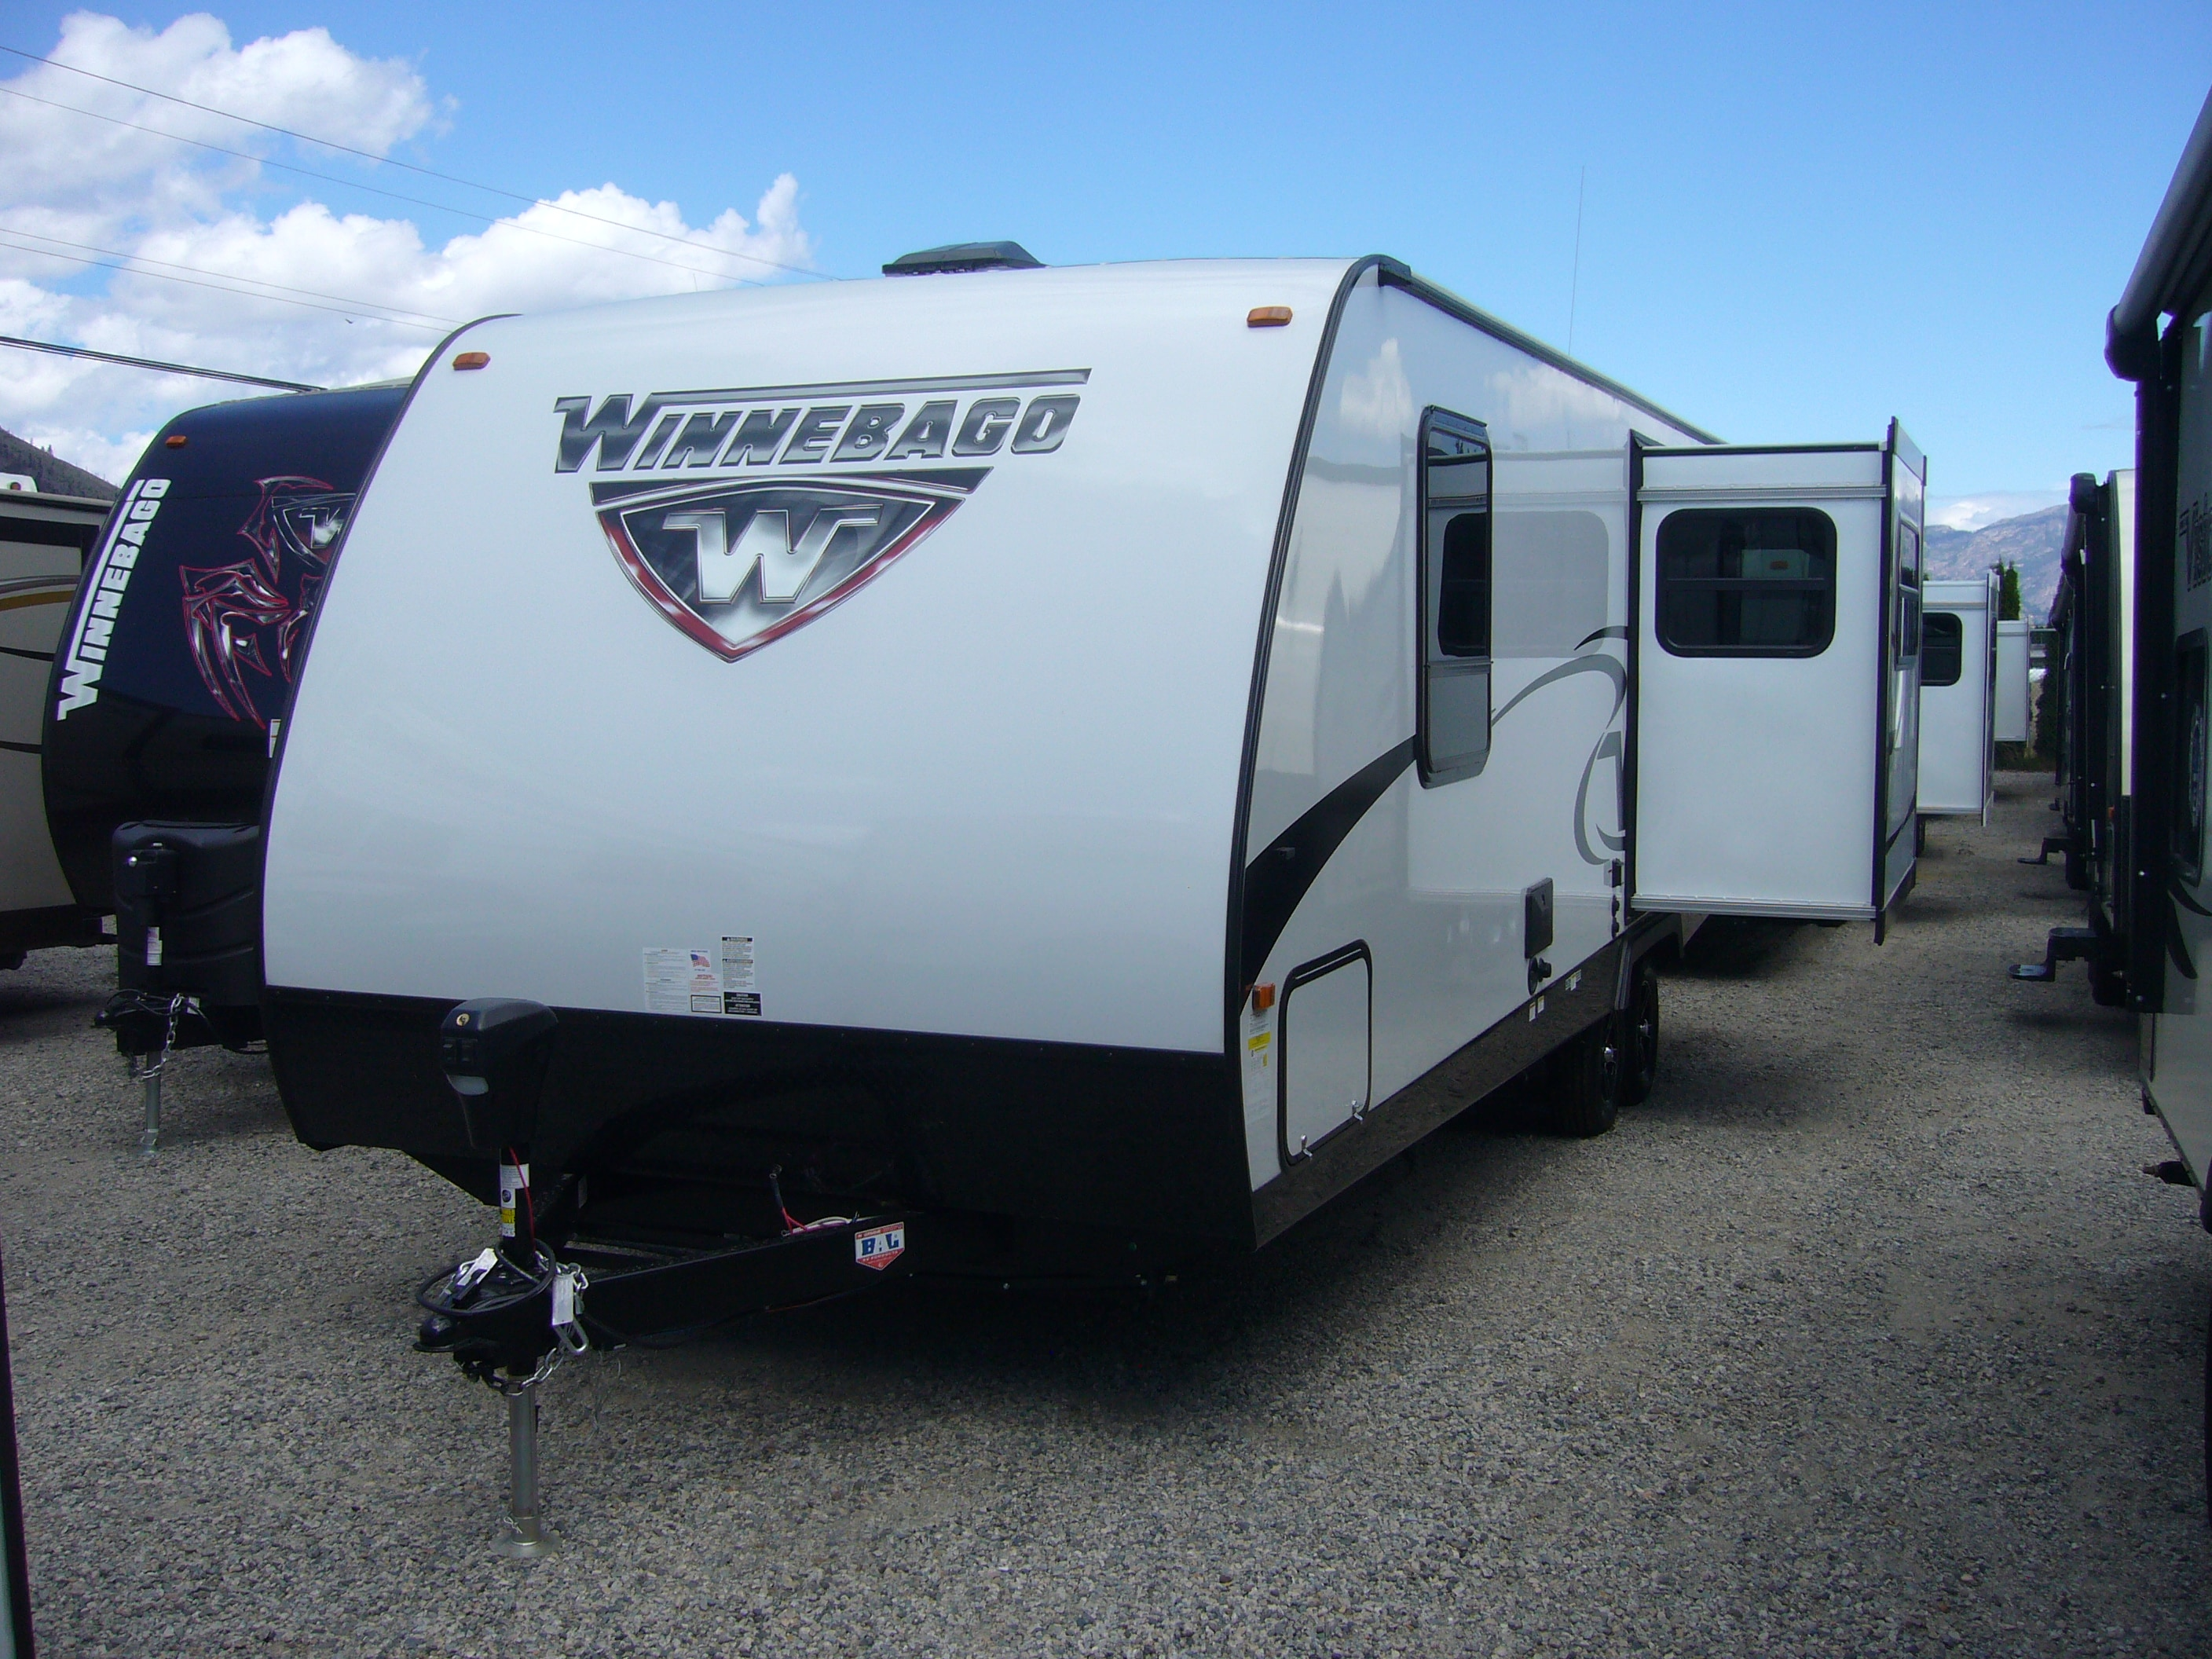 Awesome 1998 Winnebago Minnie Winnie In Titusville, FL This Advertisment Was Posted From Calabasas, California On Nov 5, 2016 By Sellernetworks Find Other Similar Ads By Searching The Other RVs For Sale  Used &amp New Category